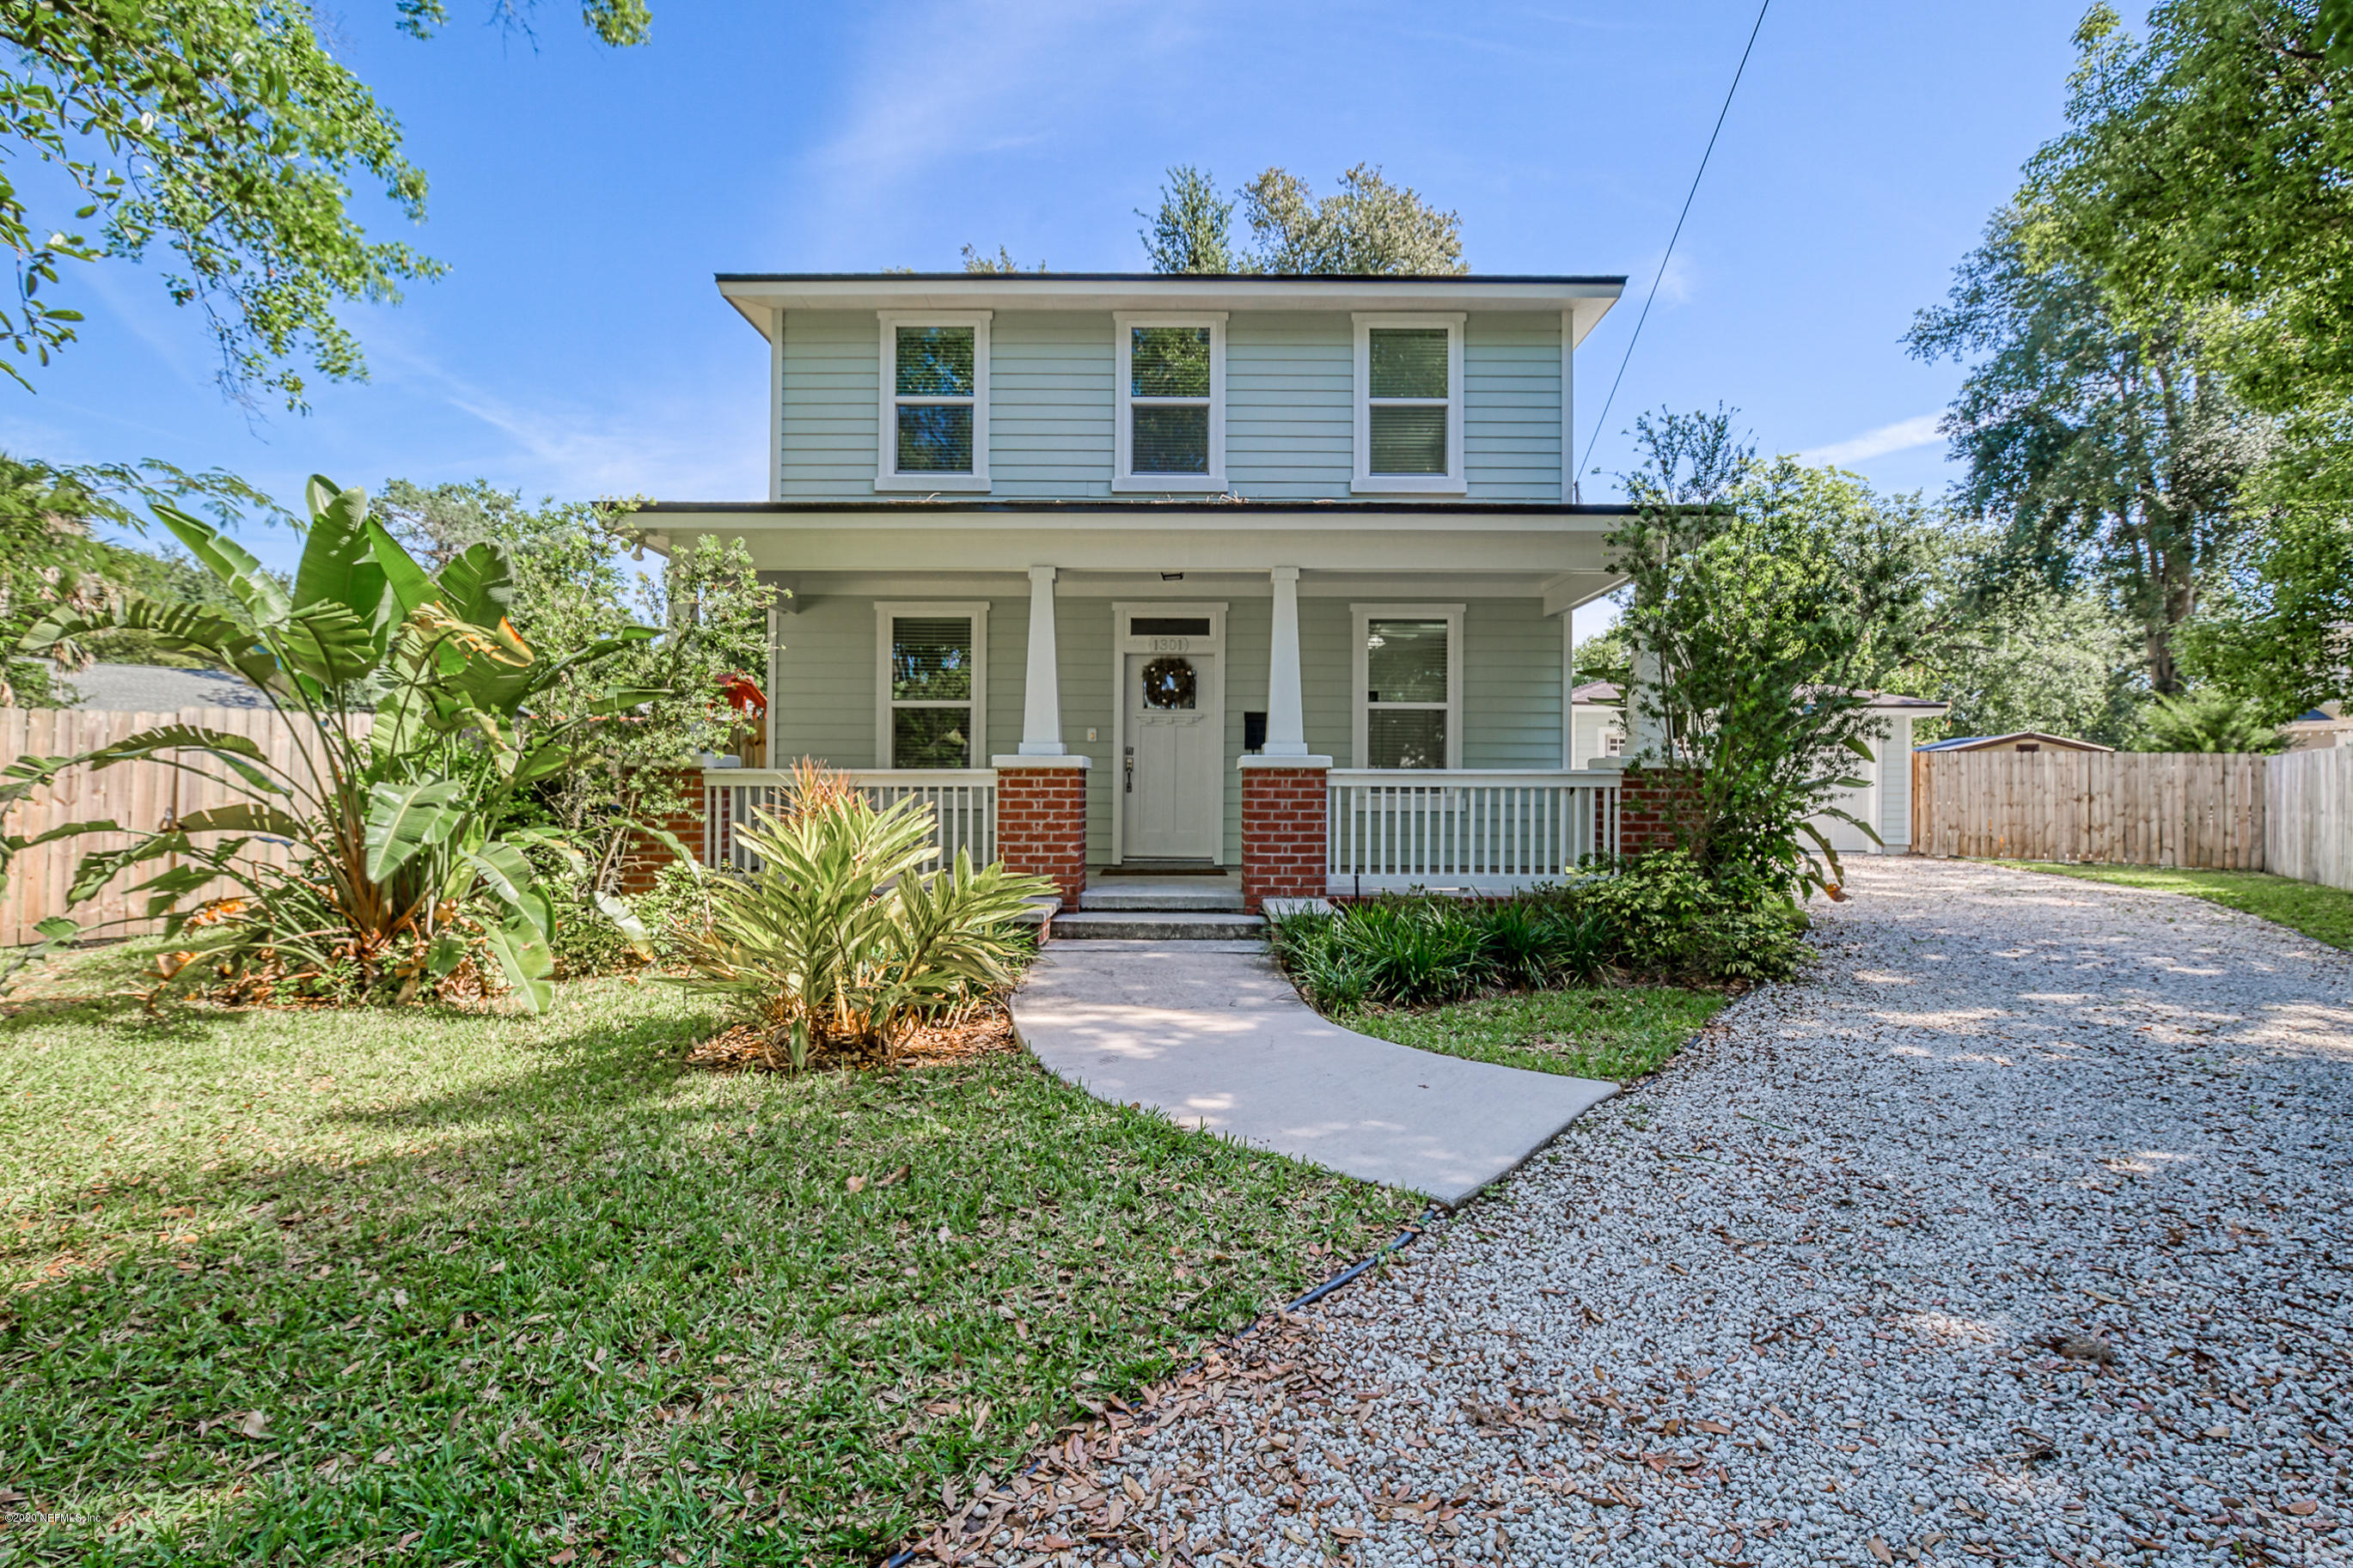 1301 SYDNEY, JACKSONVILLE, FLORIDA 32205, 4 Bedrooms Bedrooms, ,3 BathroomsBathrooms,Residential,For sale,SYDNEY,1053290